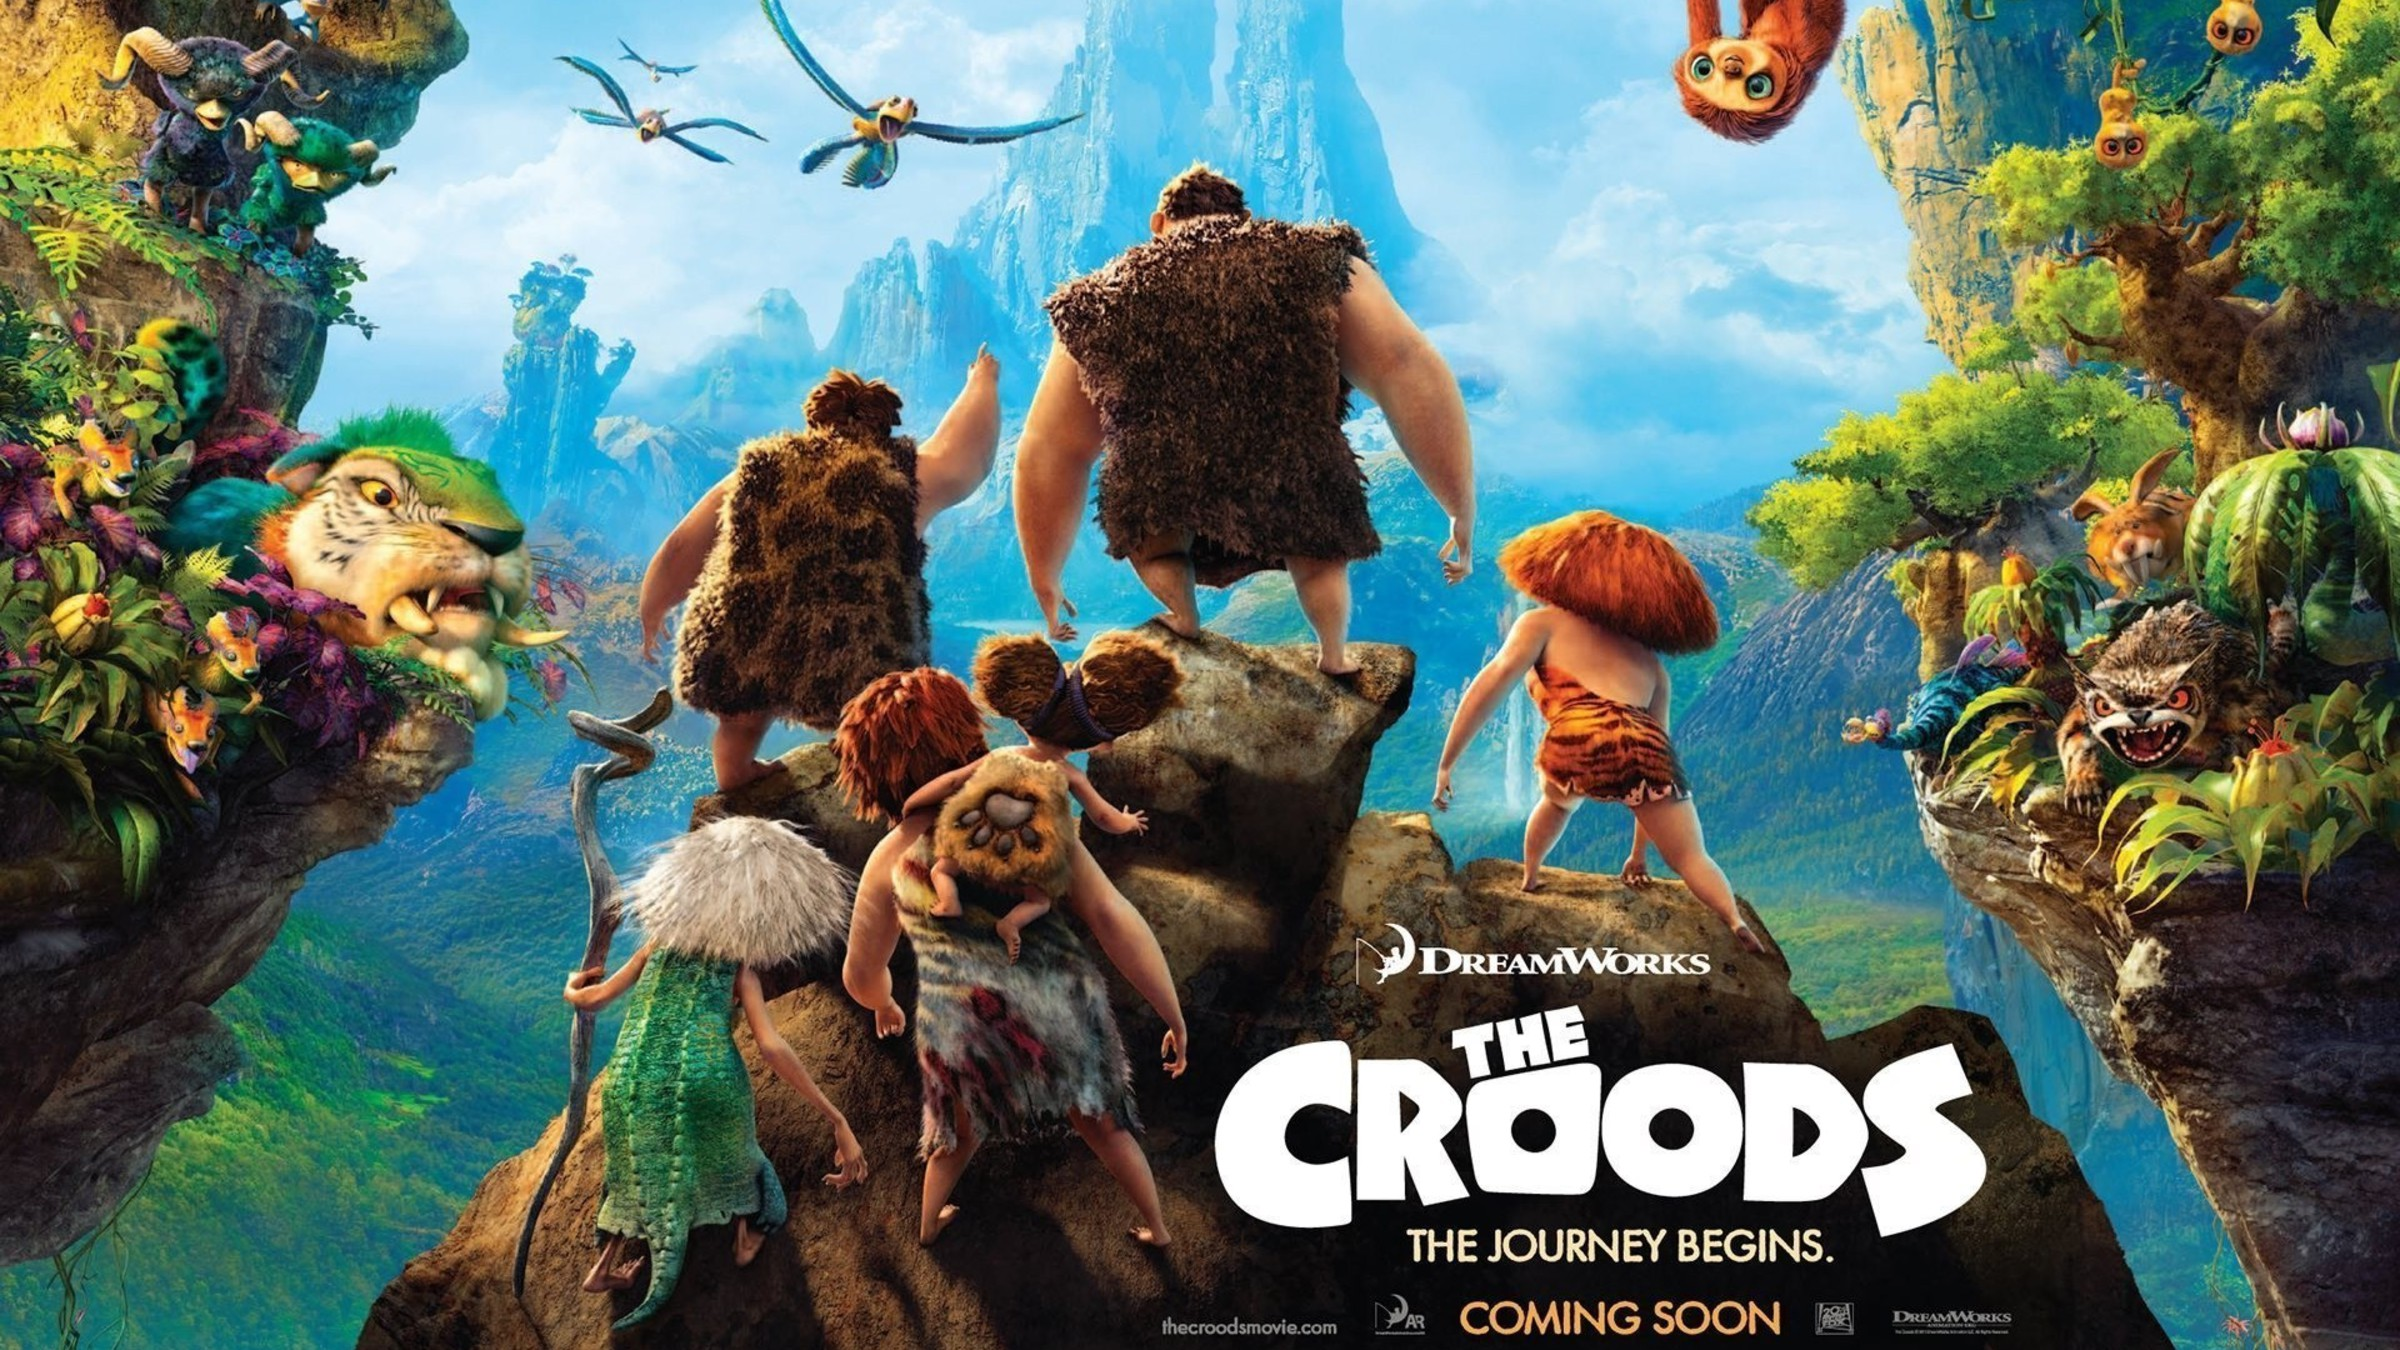 Animation the croods wallpaper allwallpaper 10666 pc en hd 169 2400x1350 2048x1152 voltagebd Choice Image